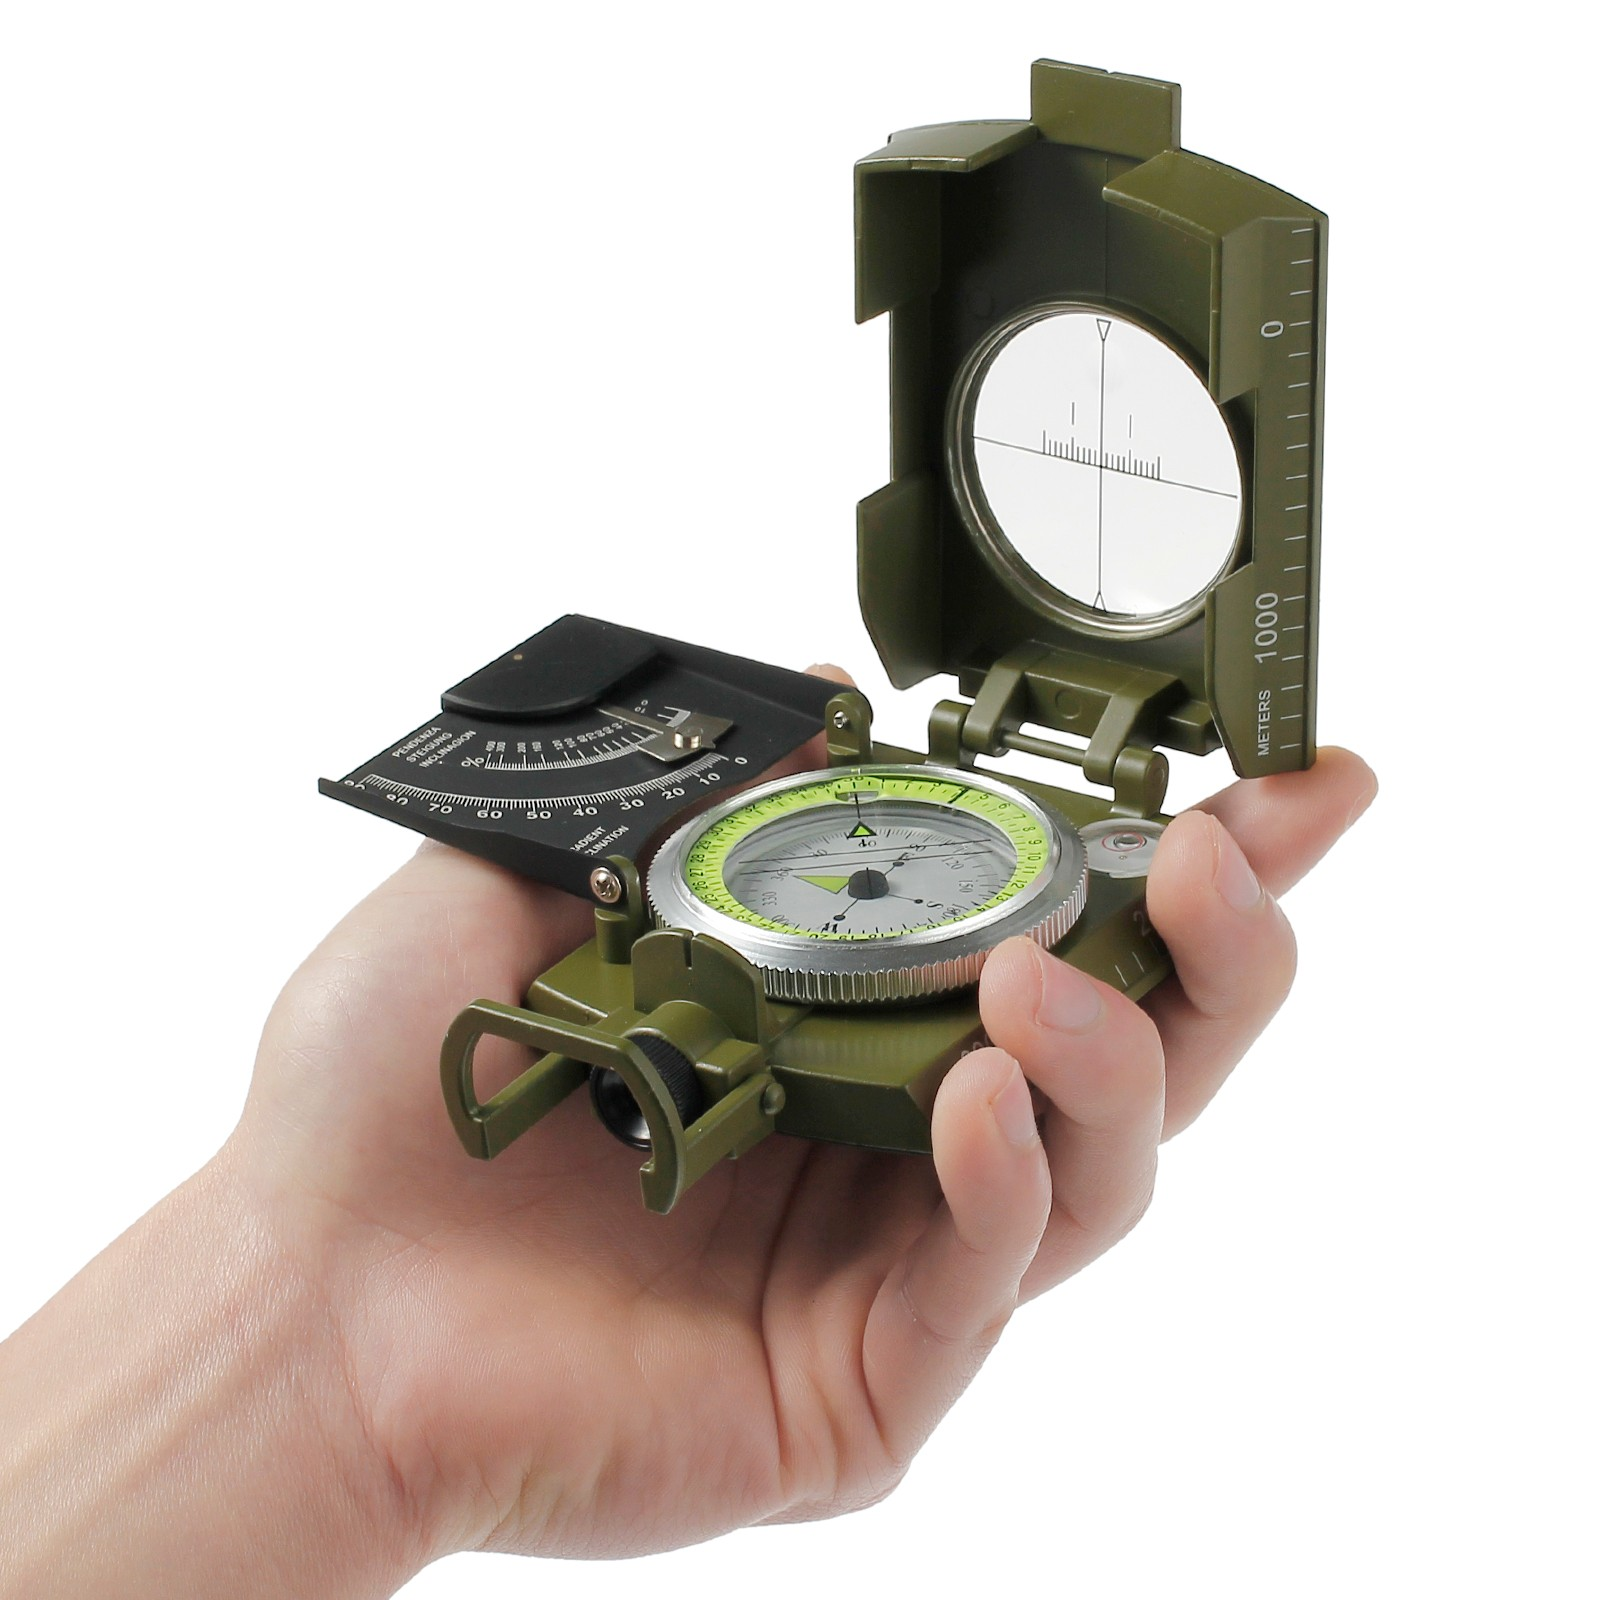 ESYNIC Compass Map Compass Military Army Metal Sighting Compass Folding Pocket Size Navigation Compass for Camping Hiking Hunting Outdoor Activities Directions with Carry Bag